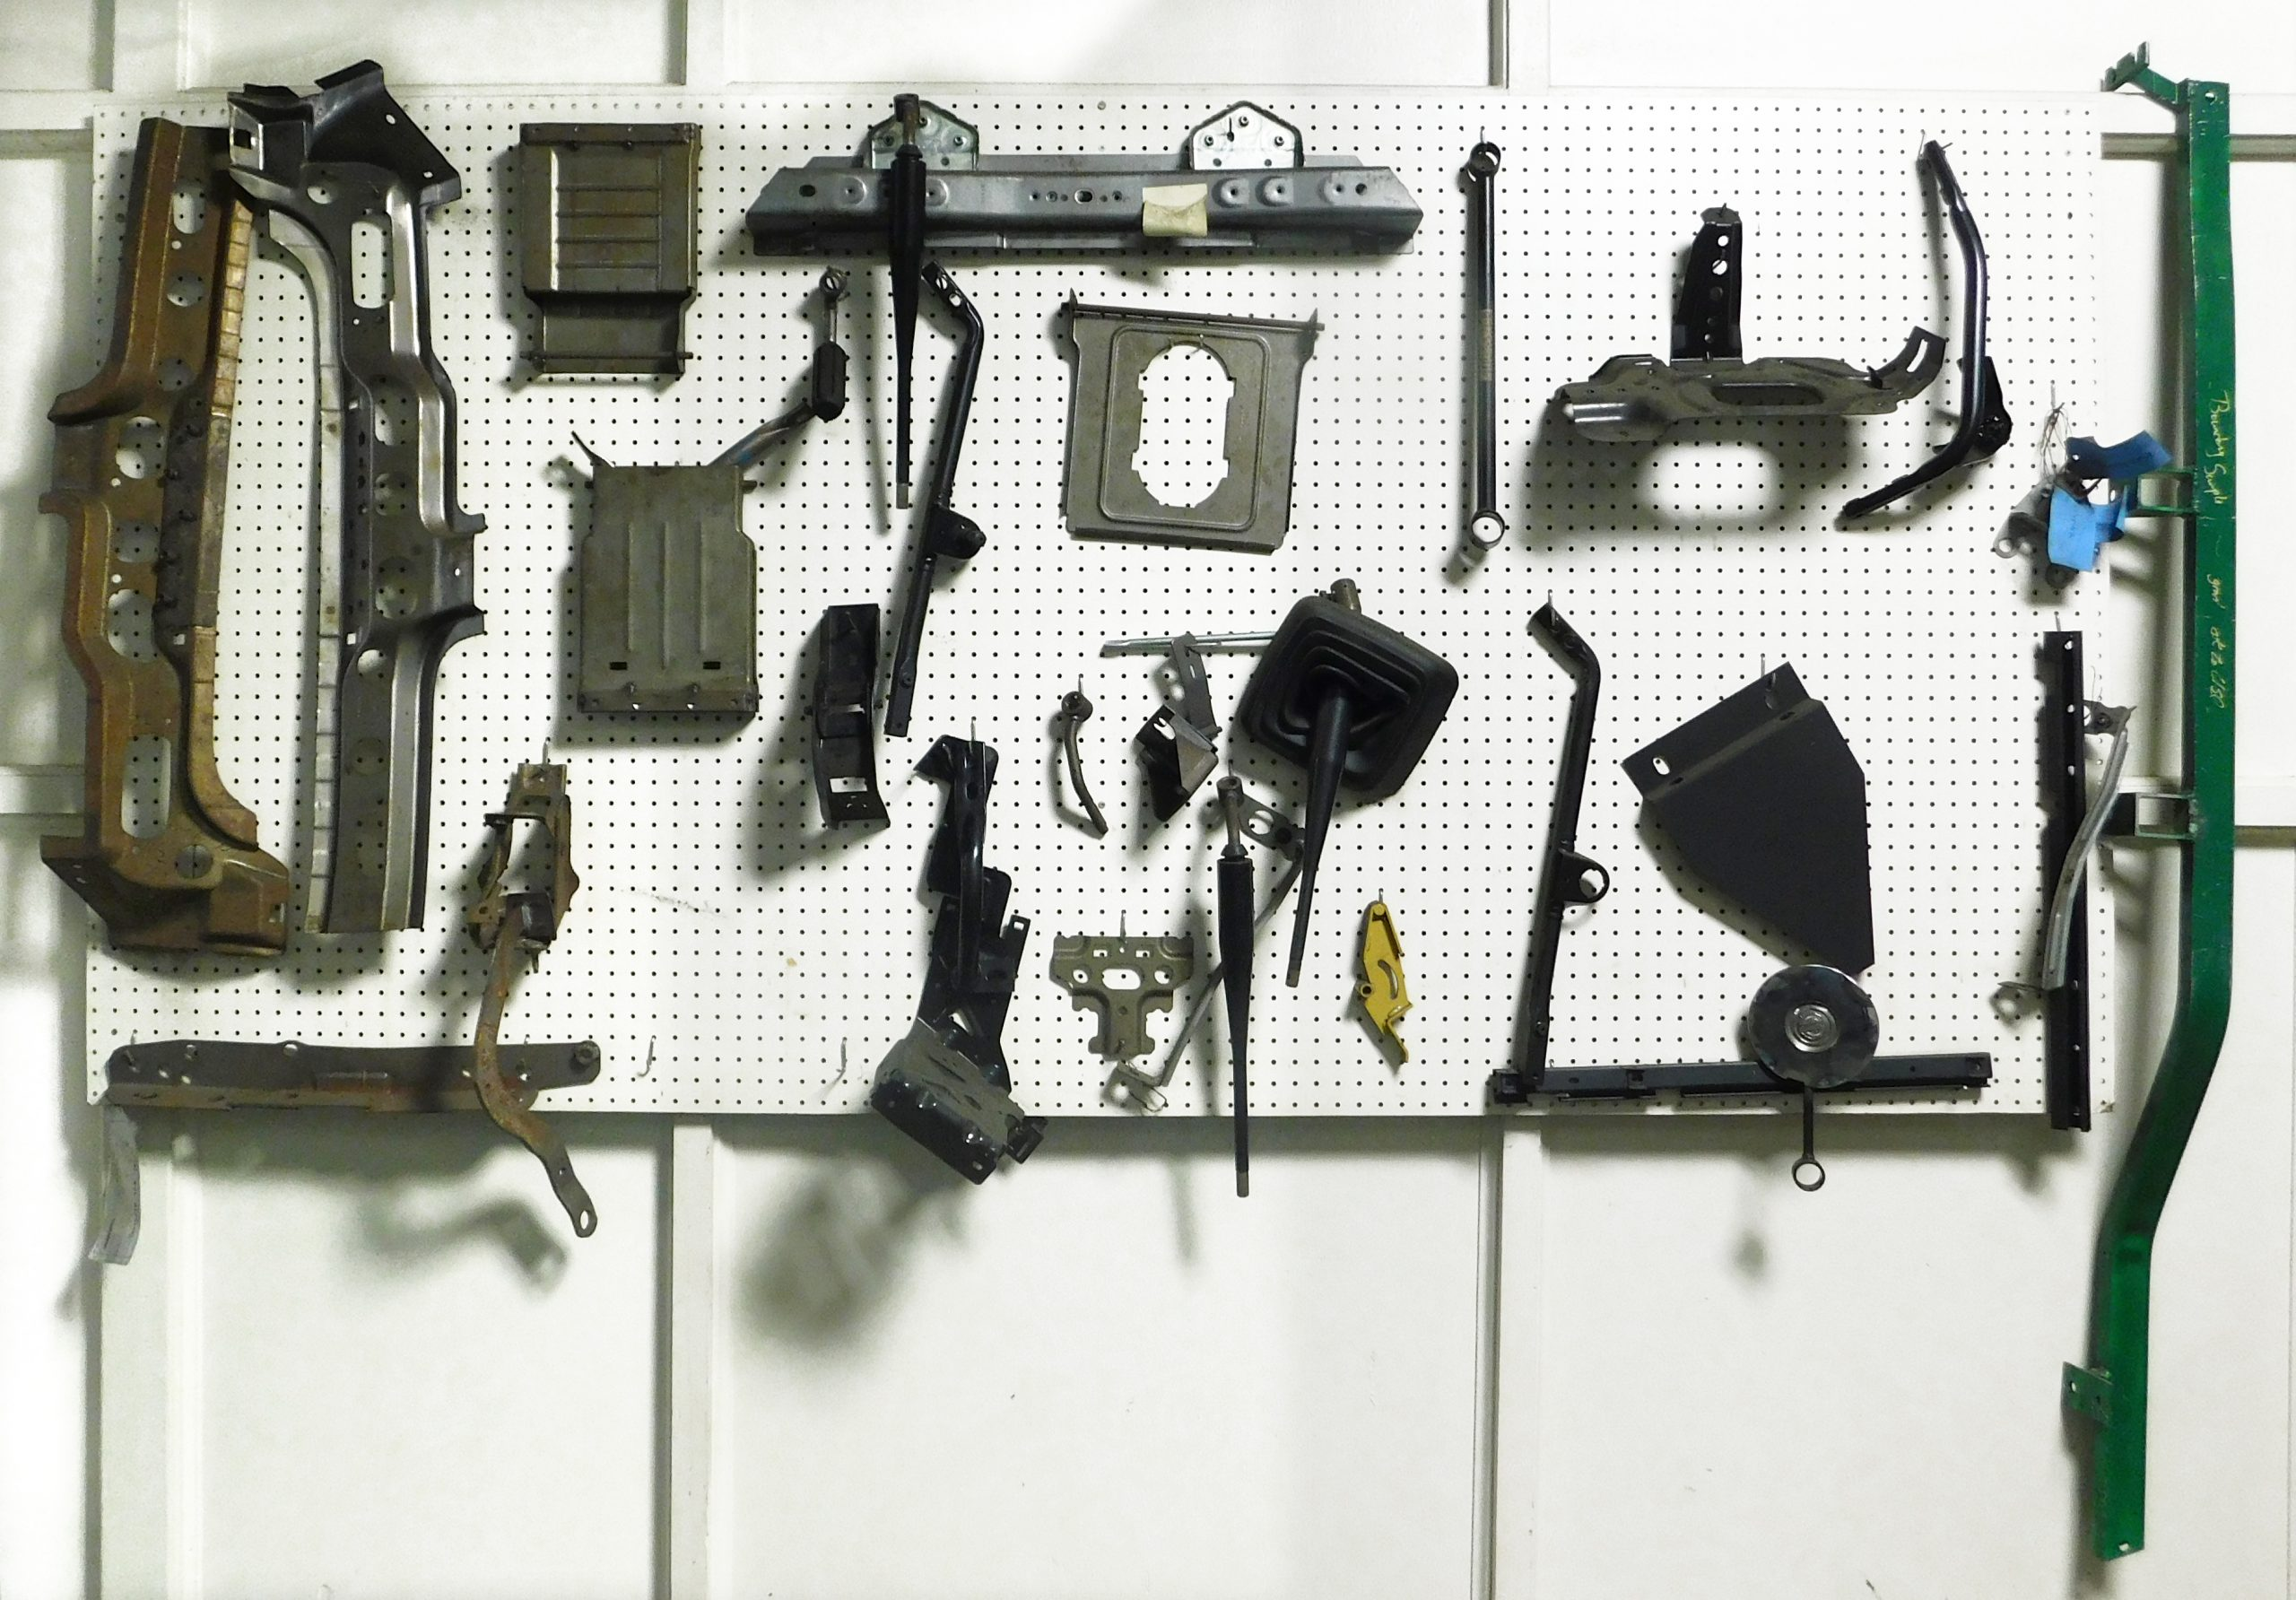 Assorted parts on display.